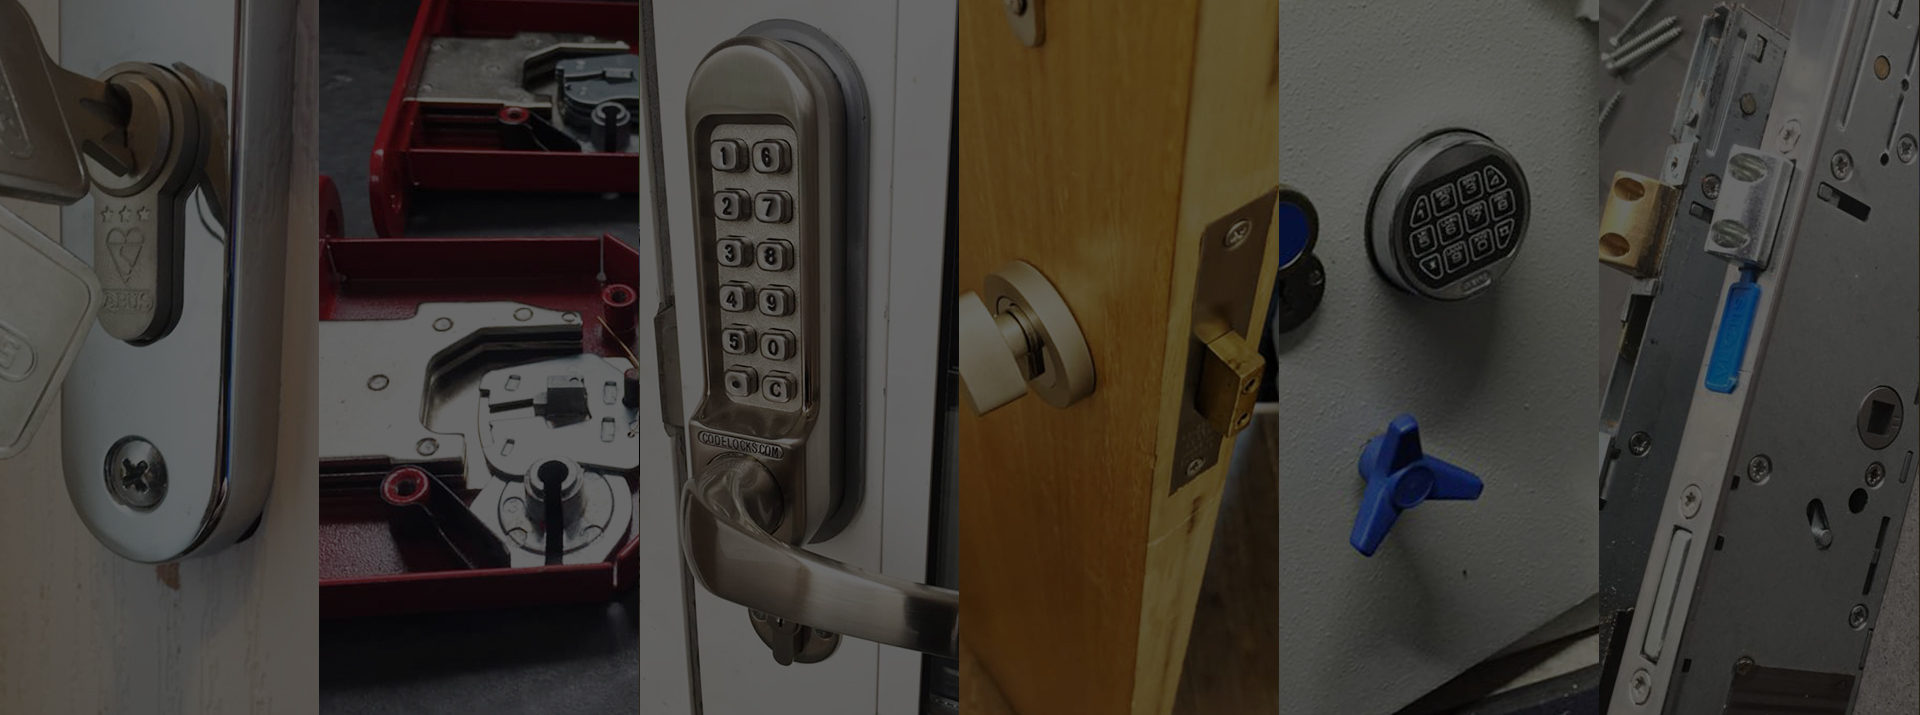 different examples of door locks